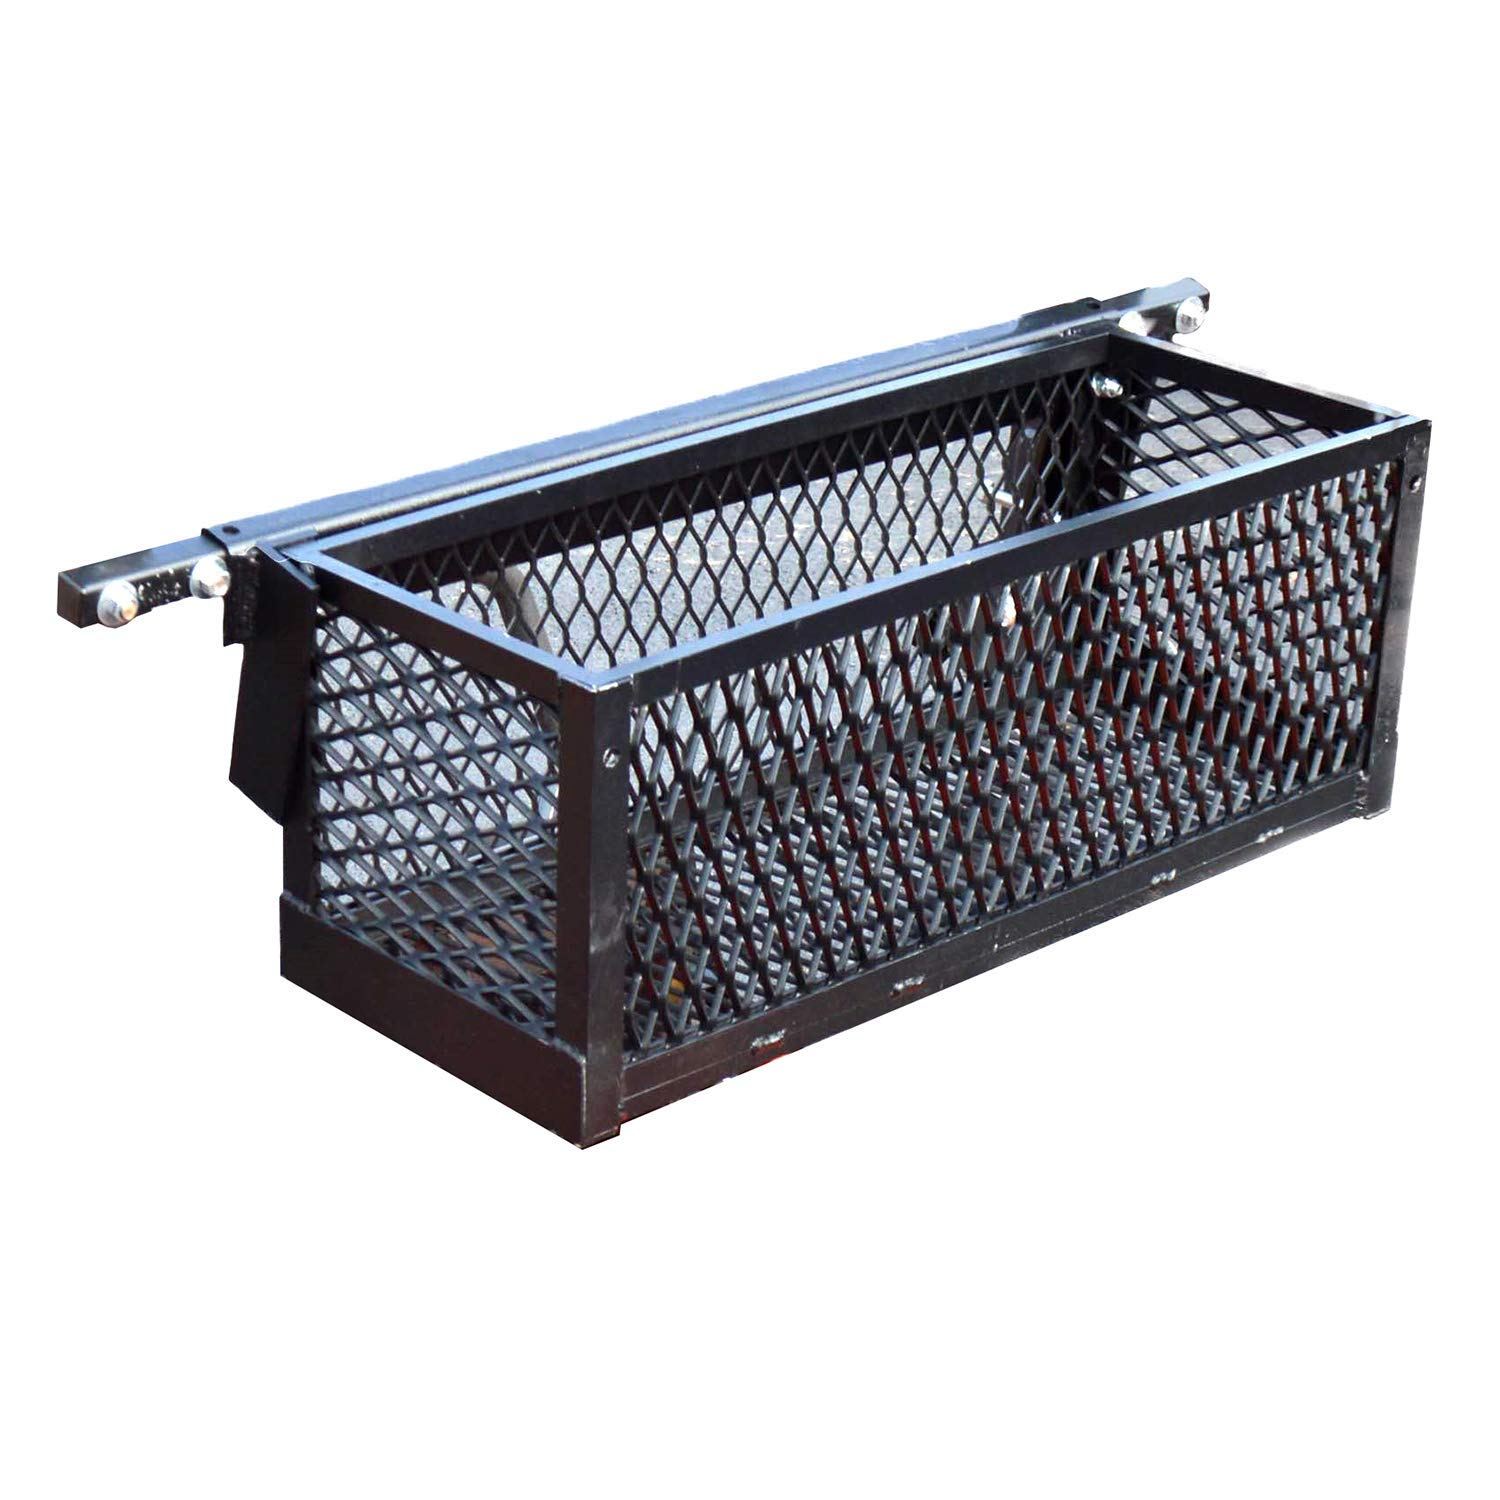 Great Day TT400 Tractor Tool-Tray